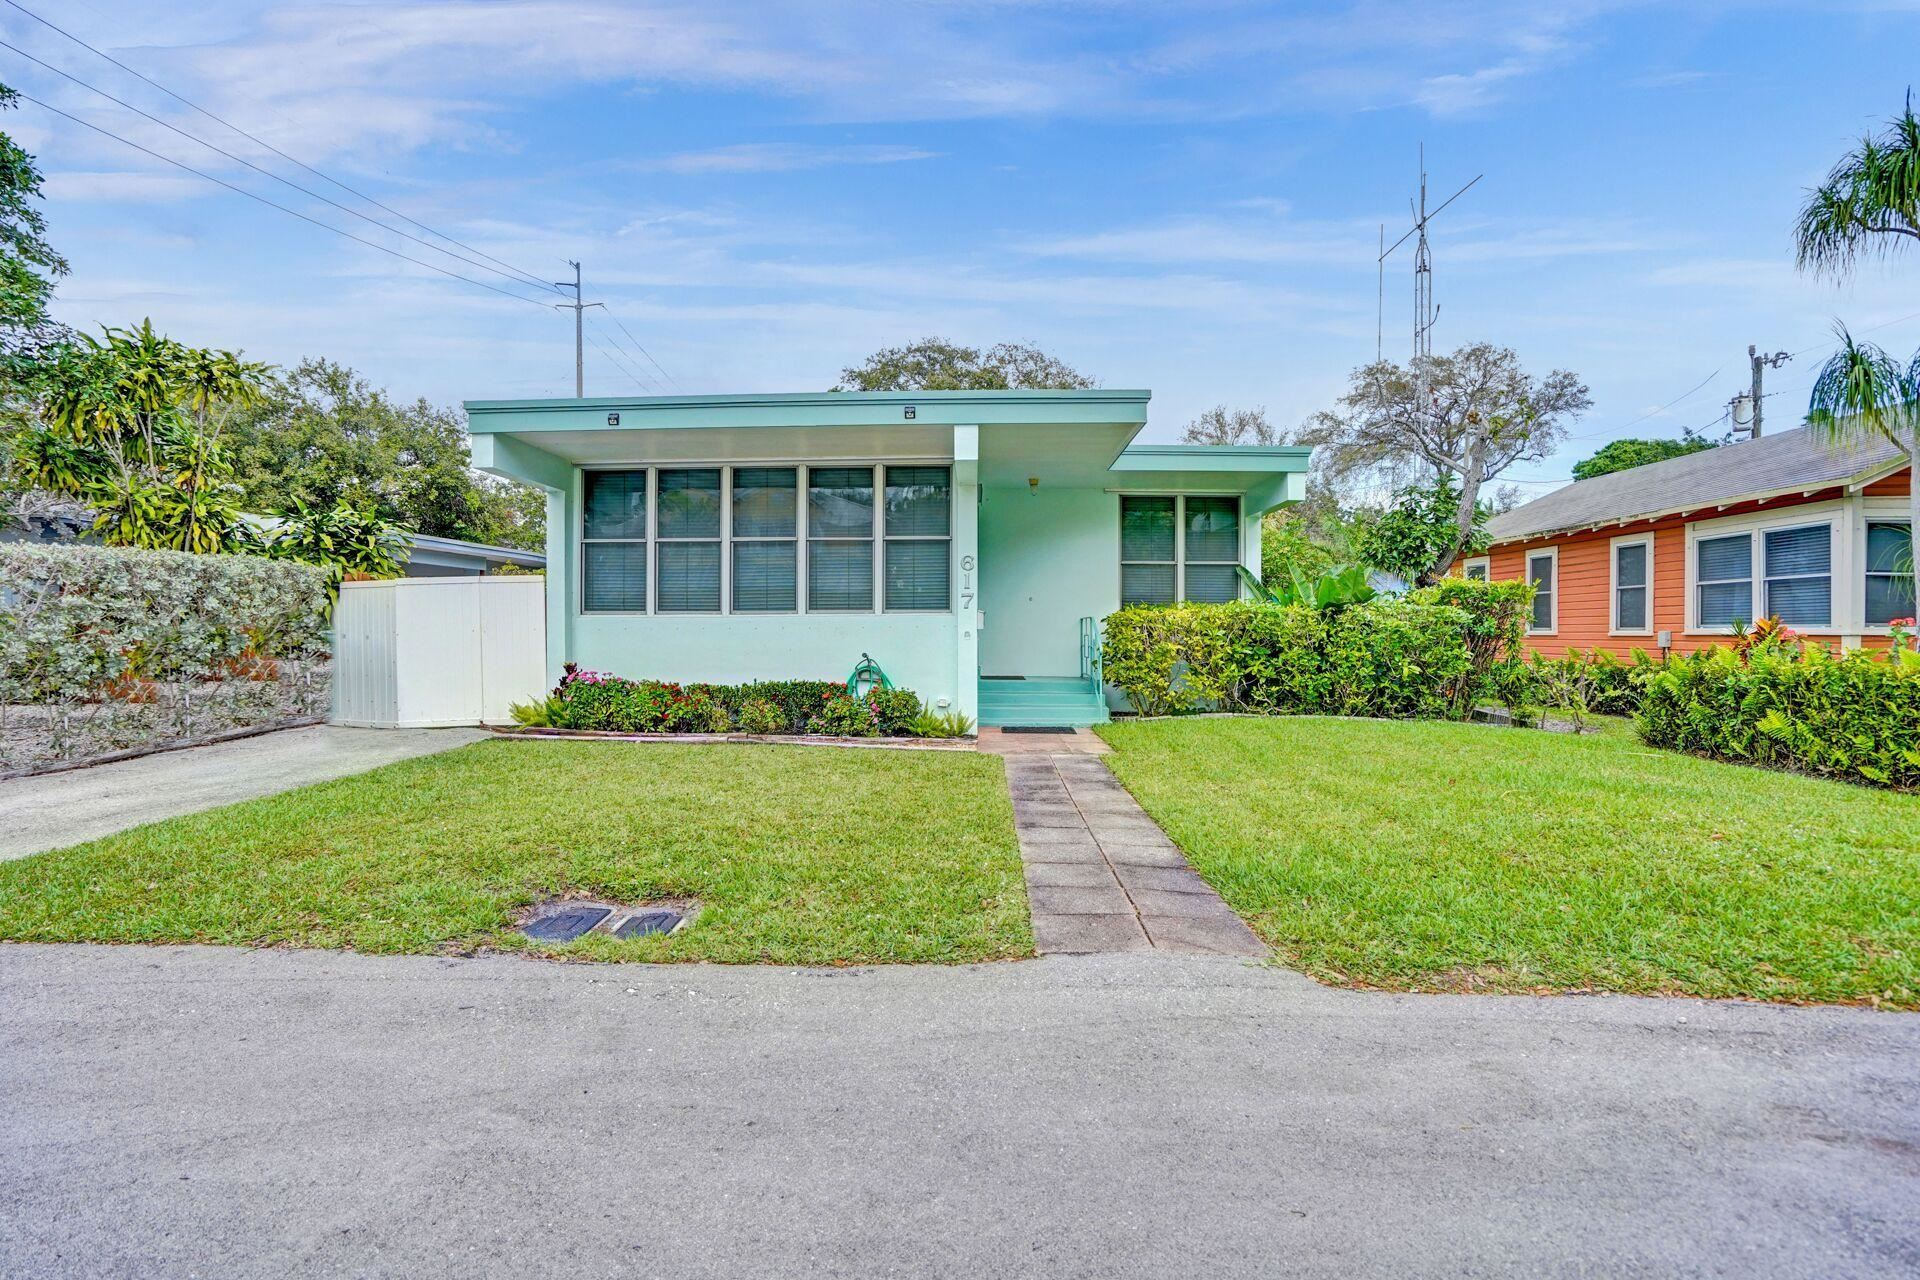 617 SW 6th Street, Fort Lauderdale, FL 33315 - MLS#: RX-10604994